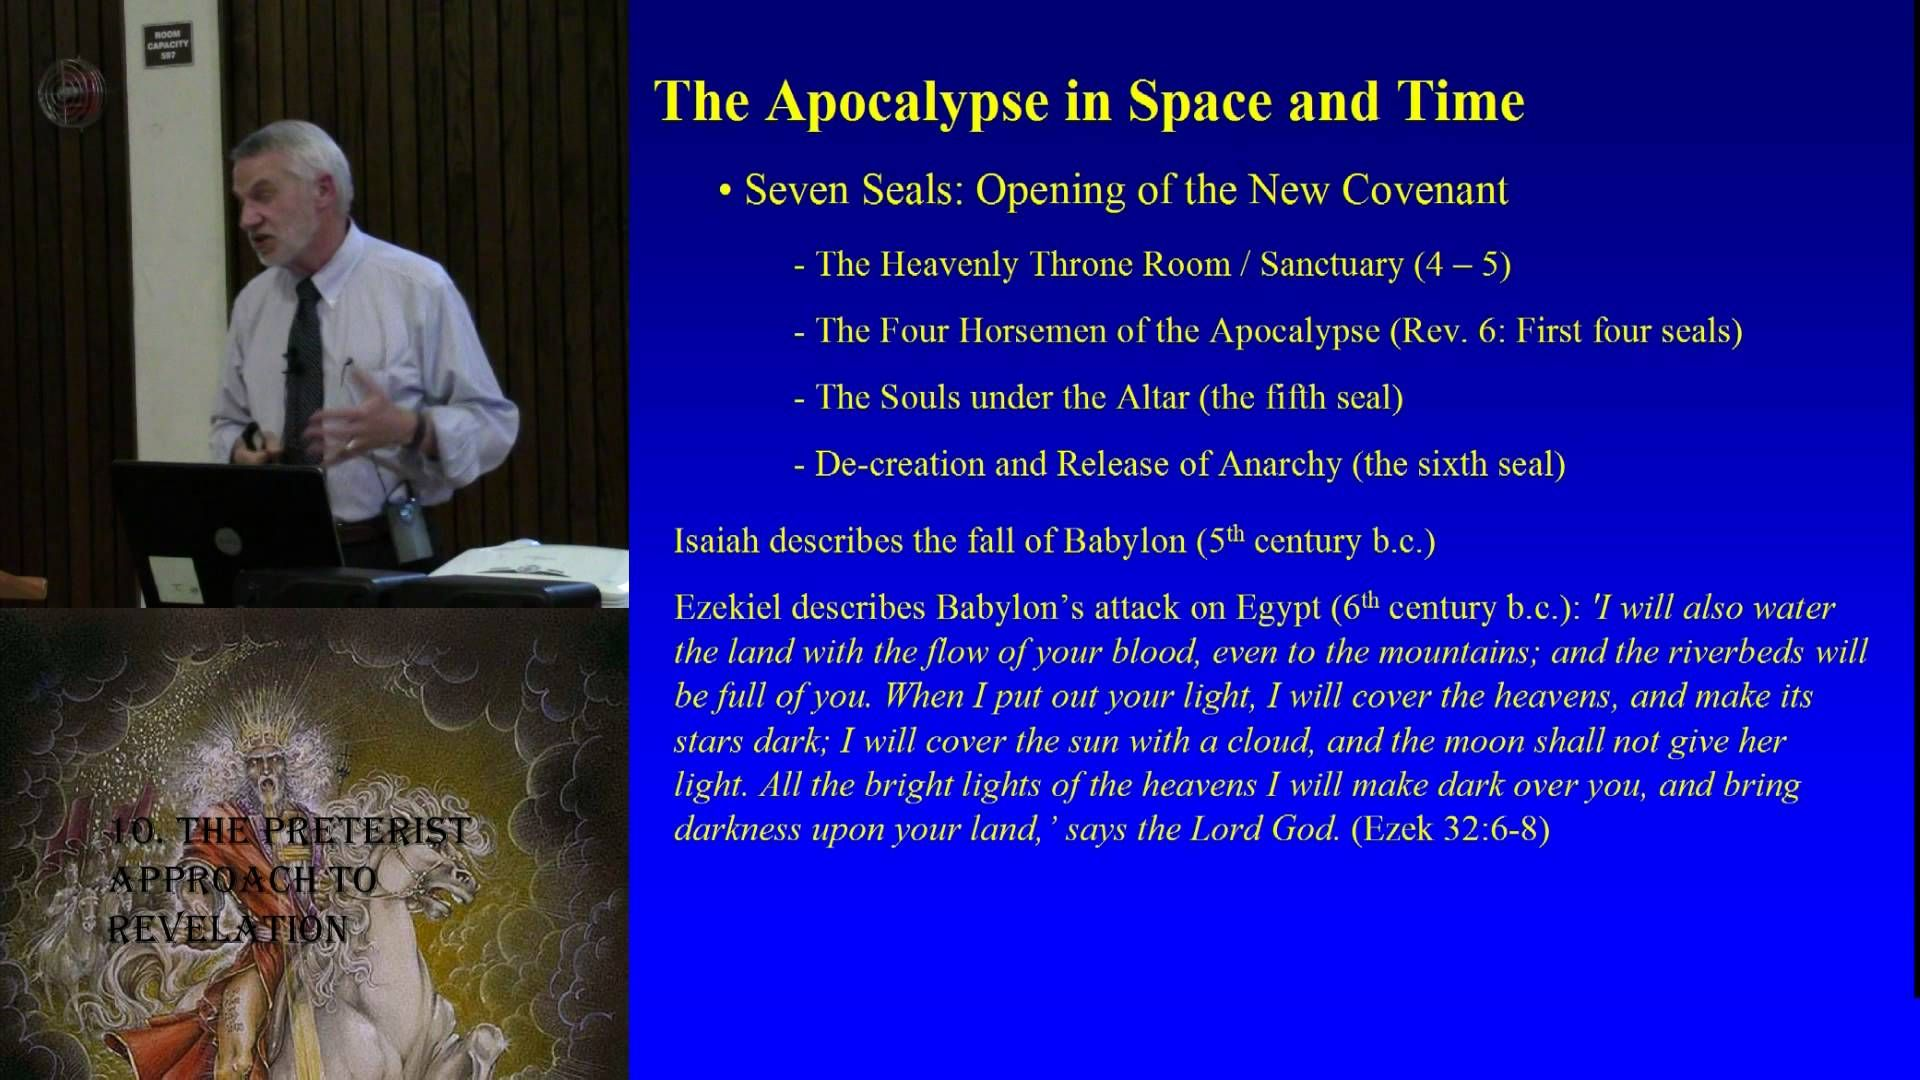 10. The Preterist Approach to Revelation